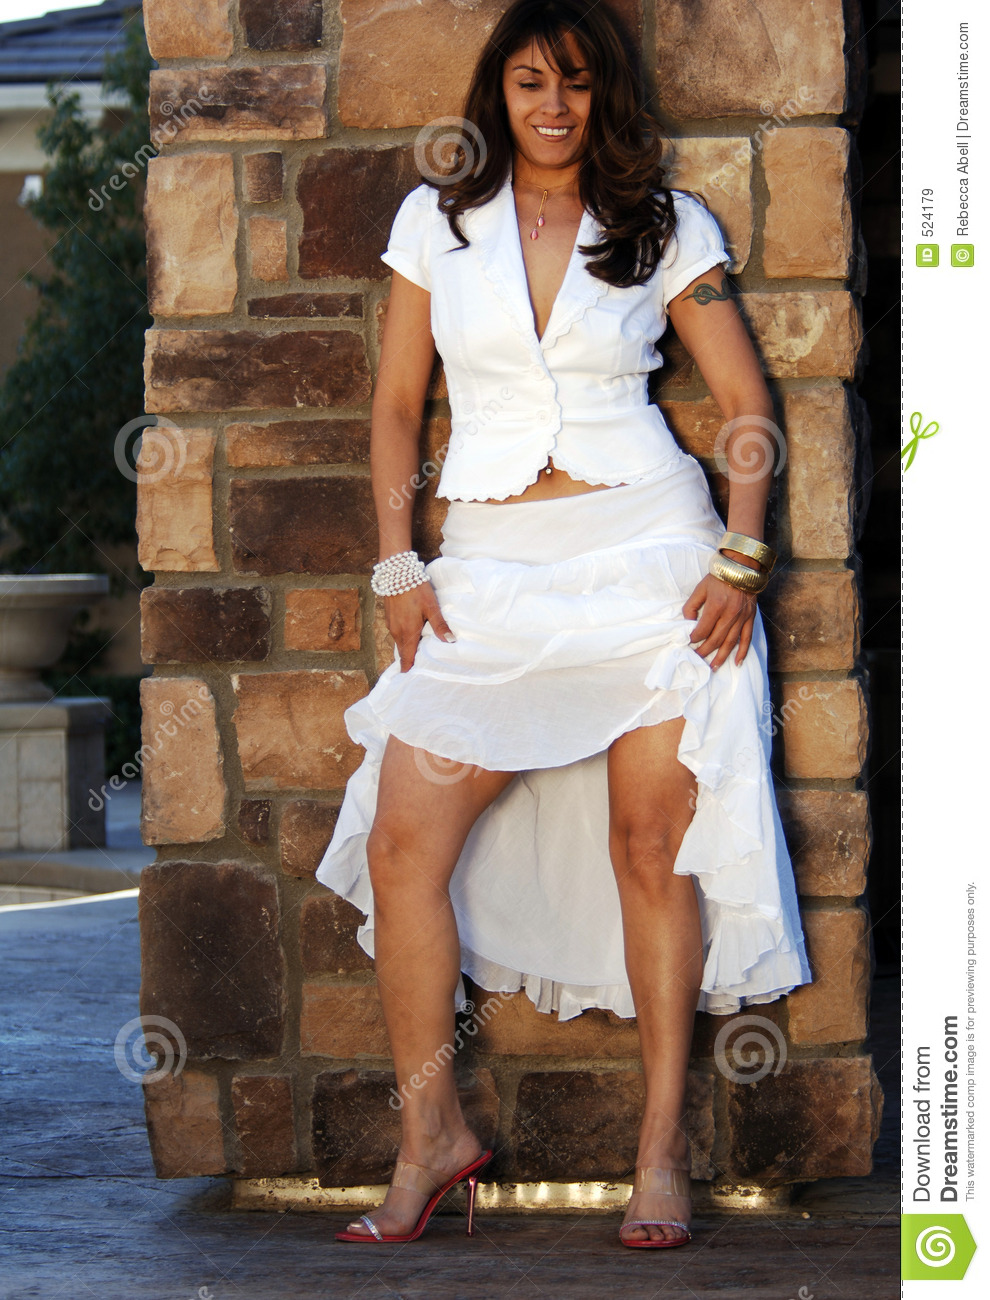 Latin Woman In White Dress Showing Off Her Legs